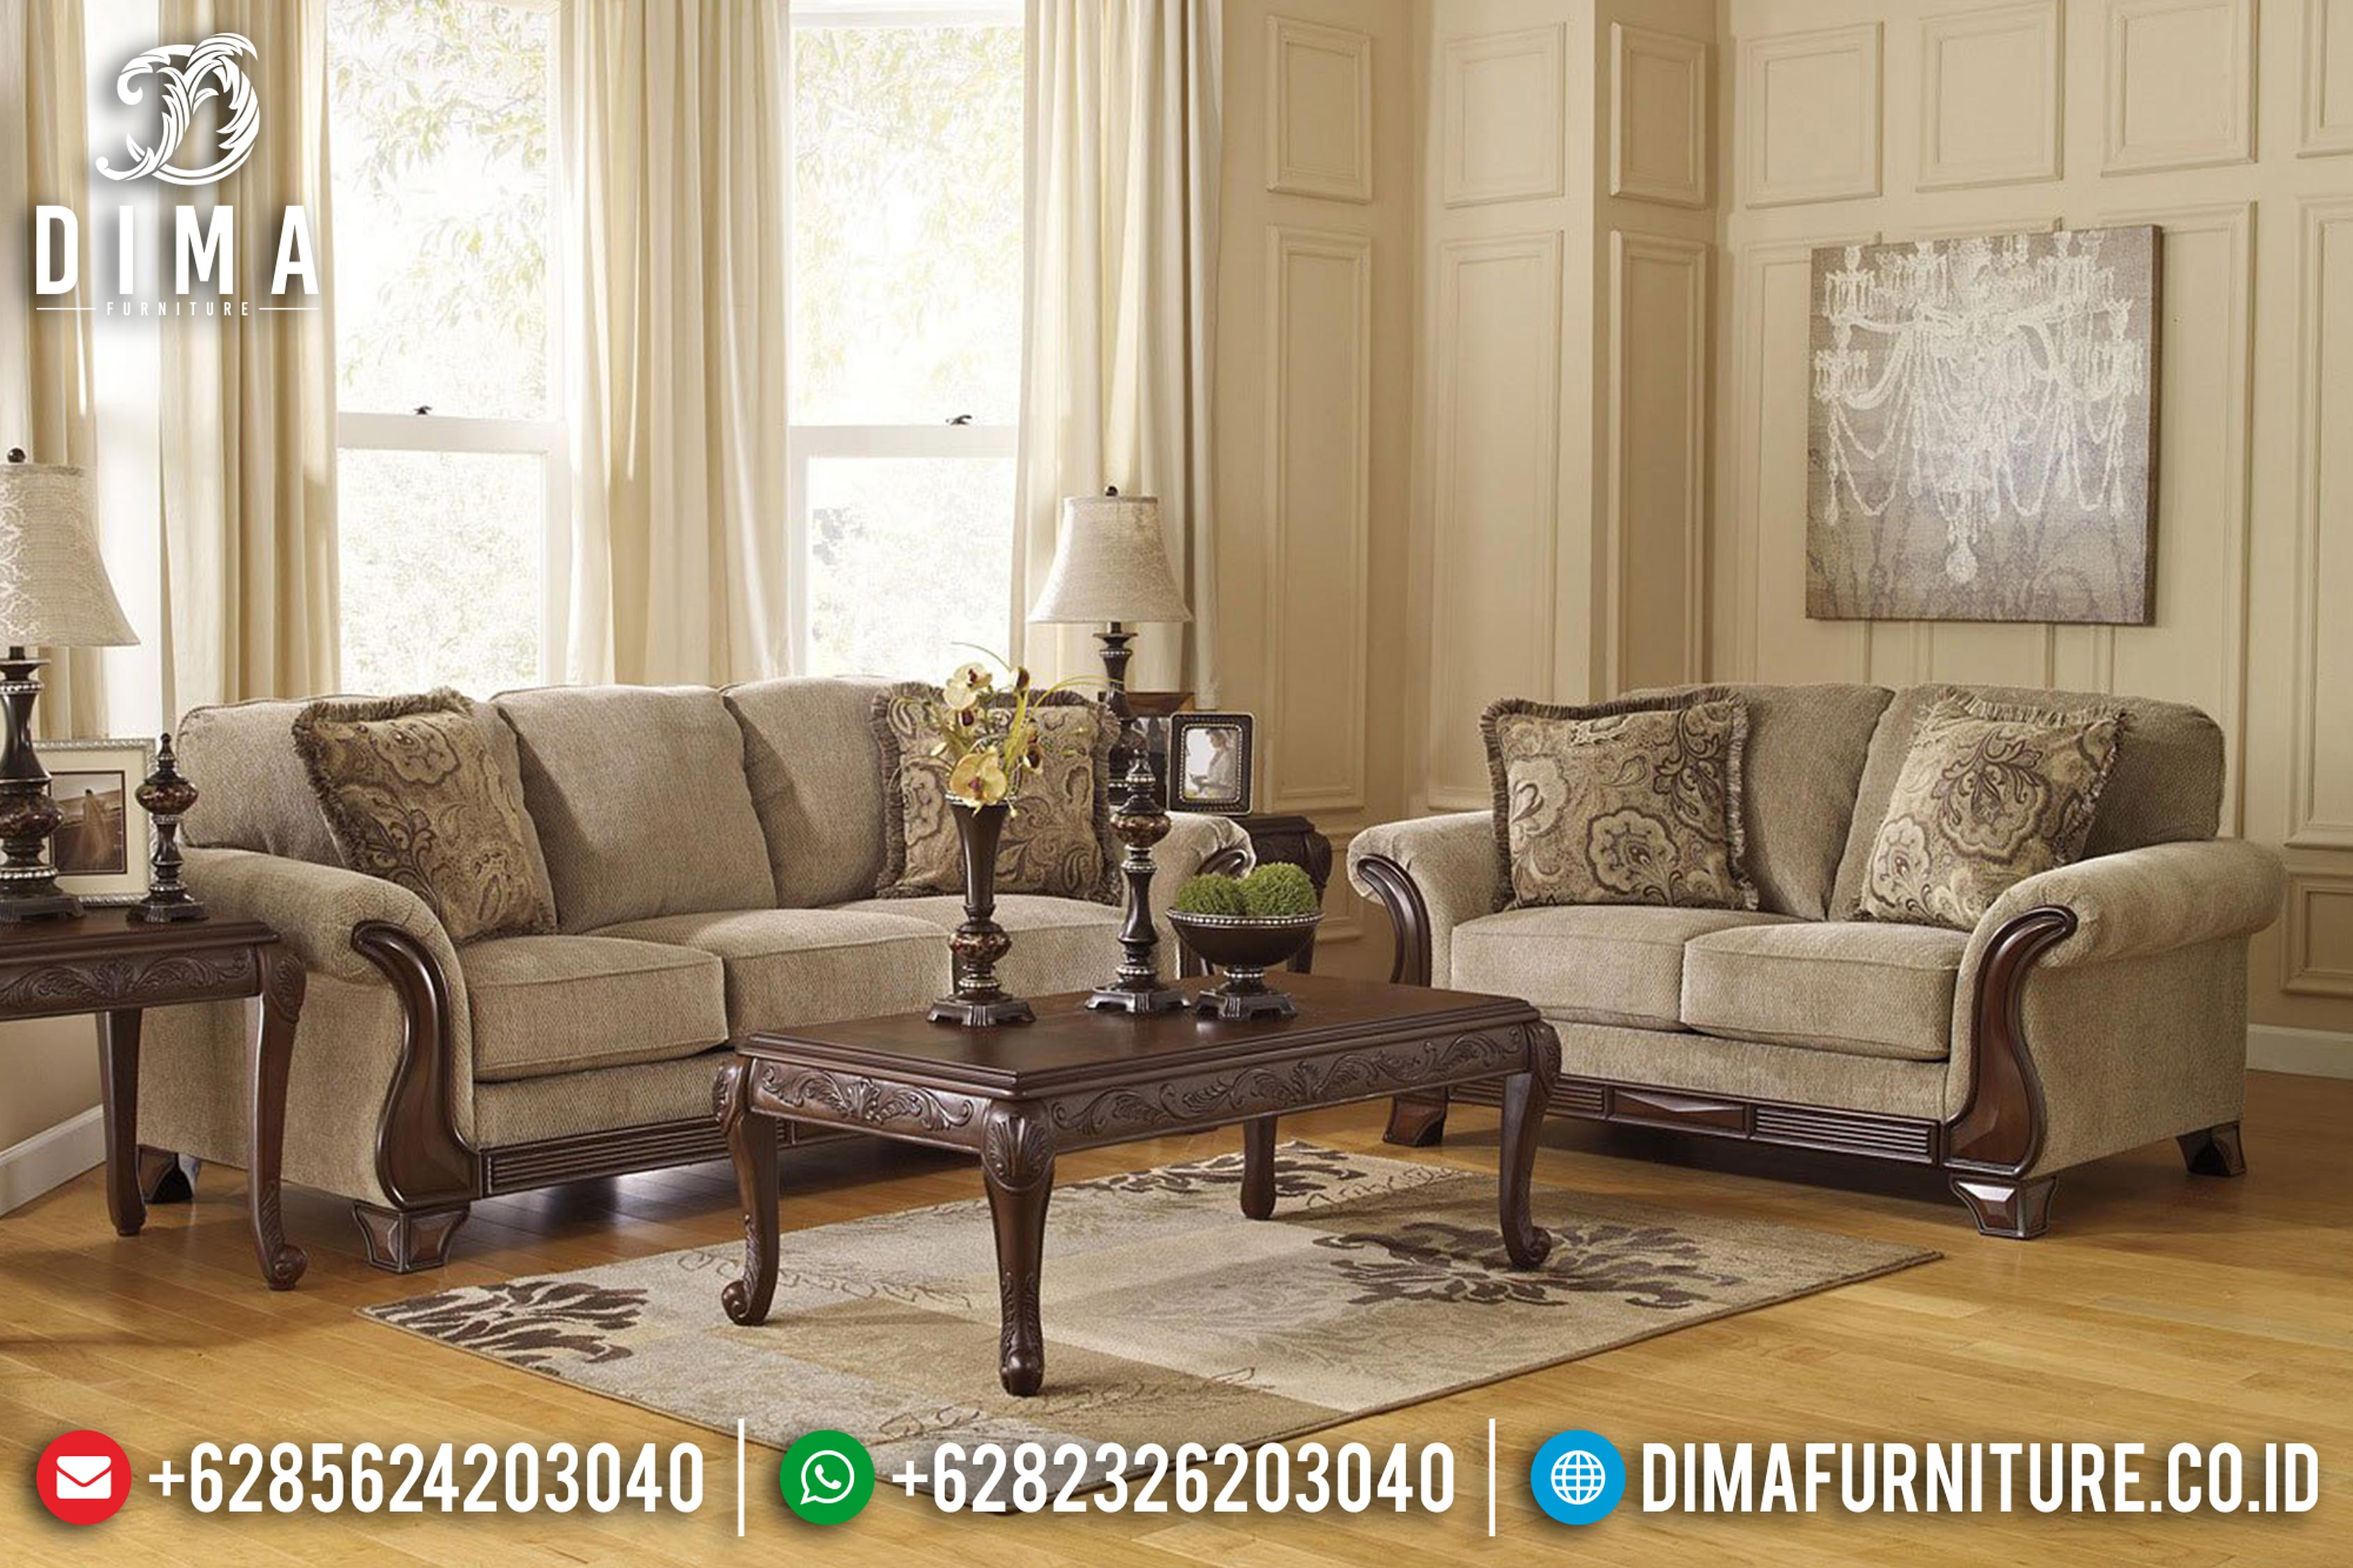 Model Sofa Tamu Jepara 2019-2020 009 Dima Furniture Jepara